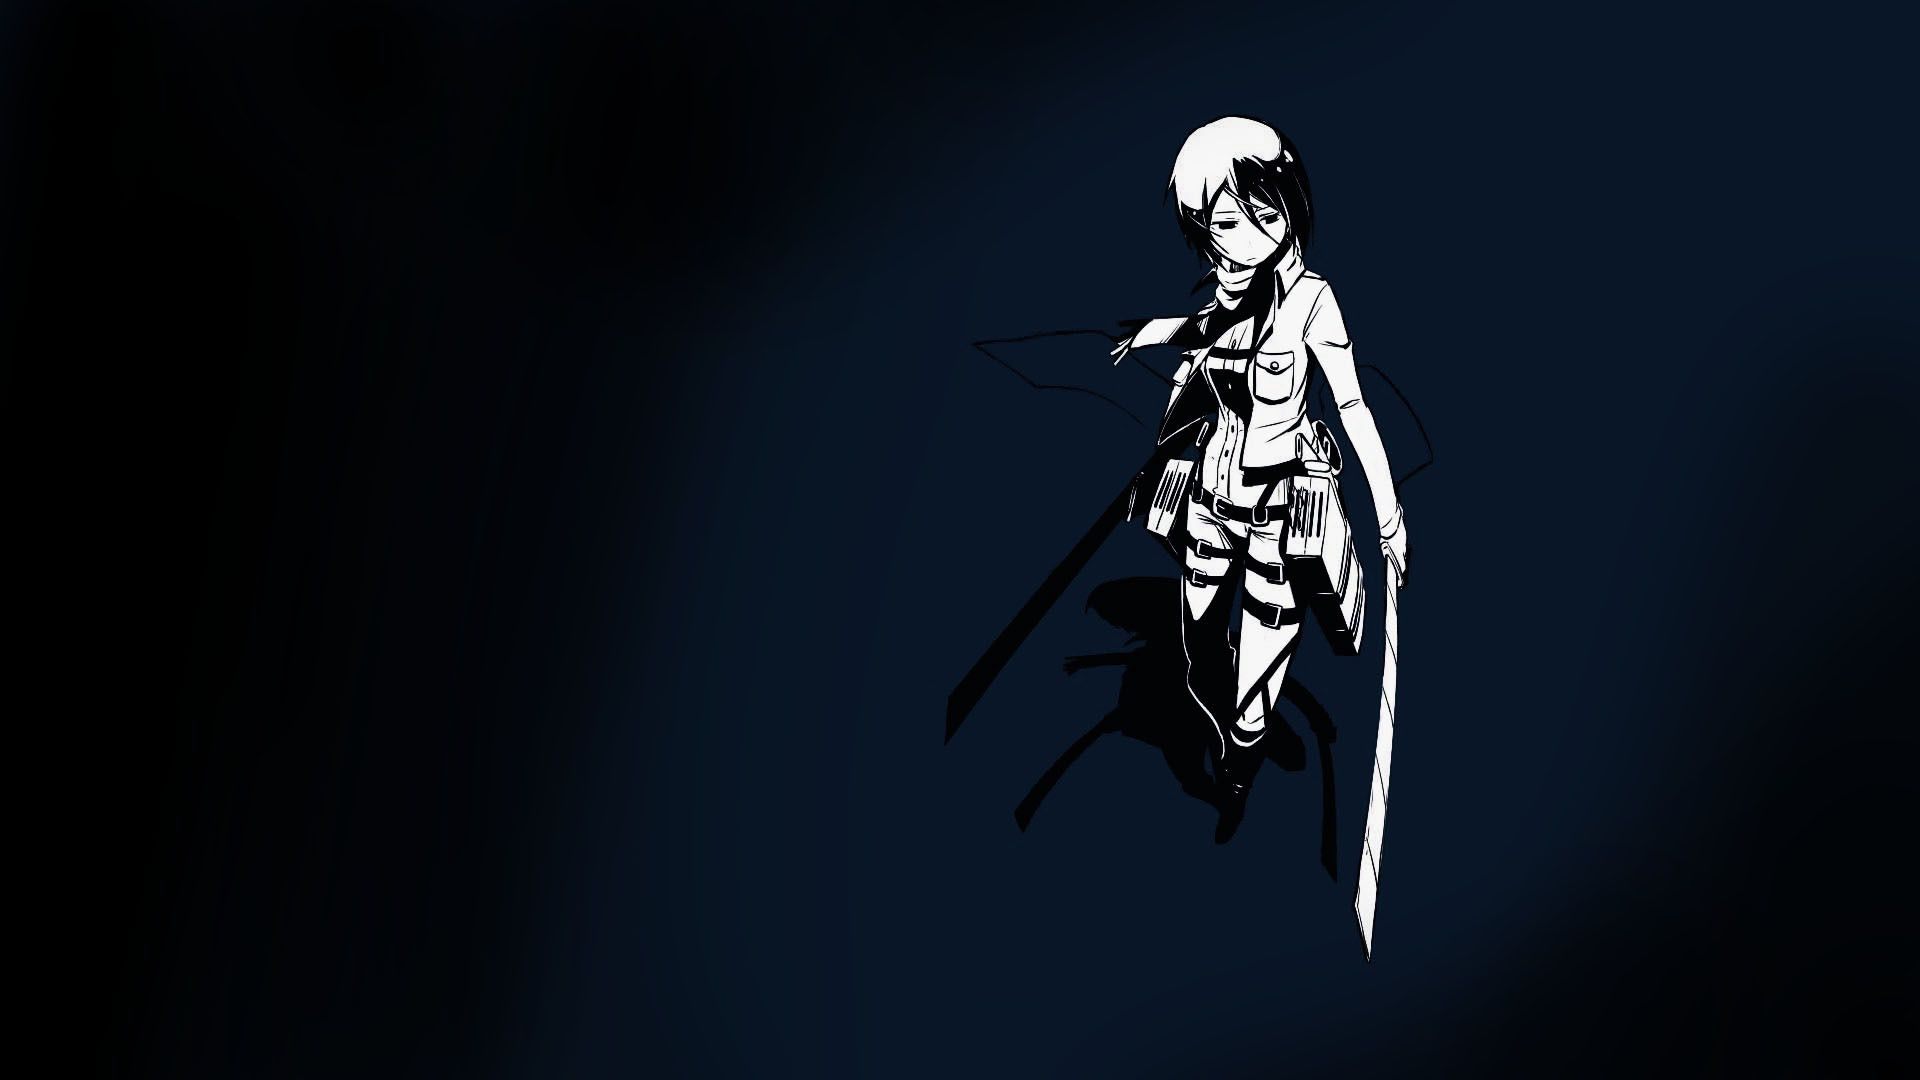 Attack On Titan Minimalist Wallpaper Posted By Ethan Peltier